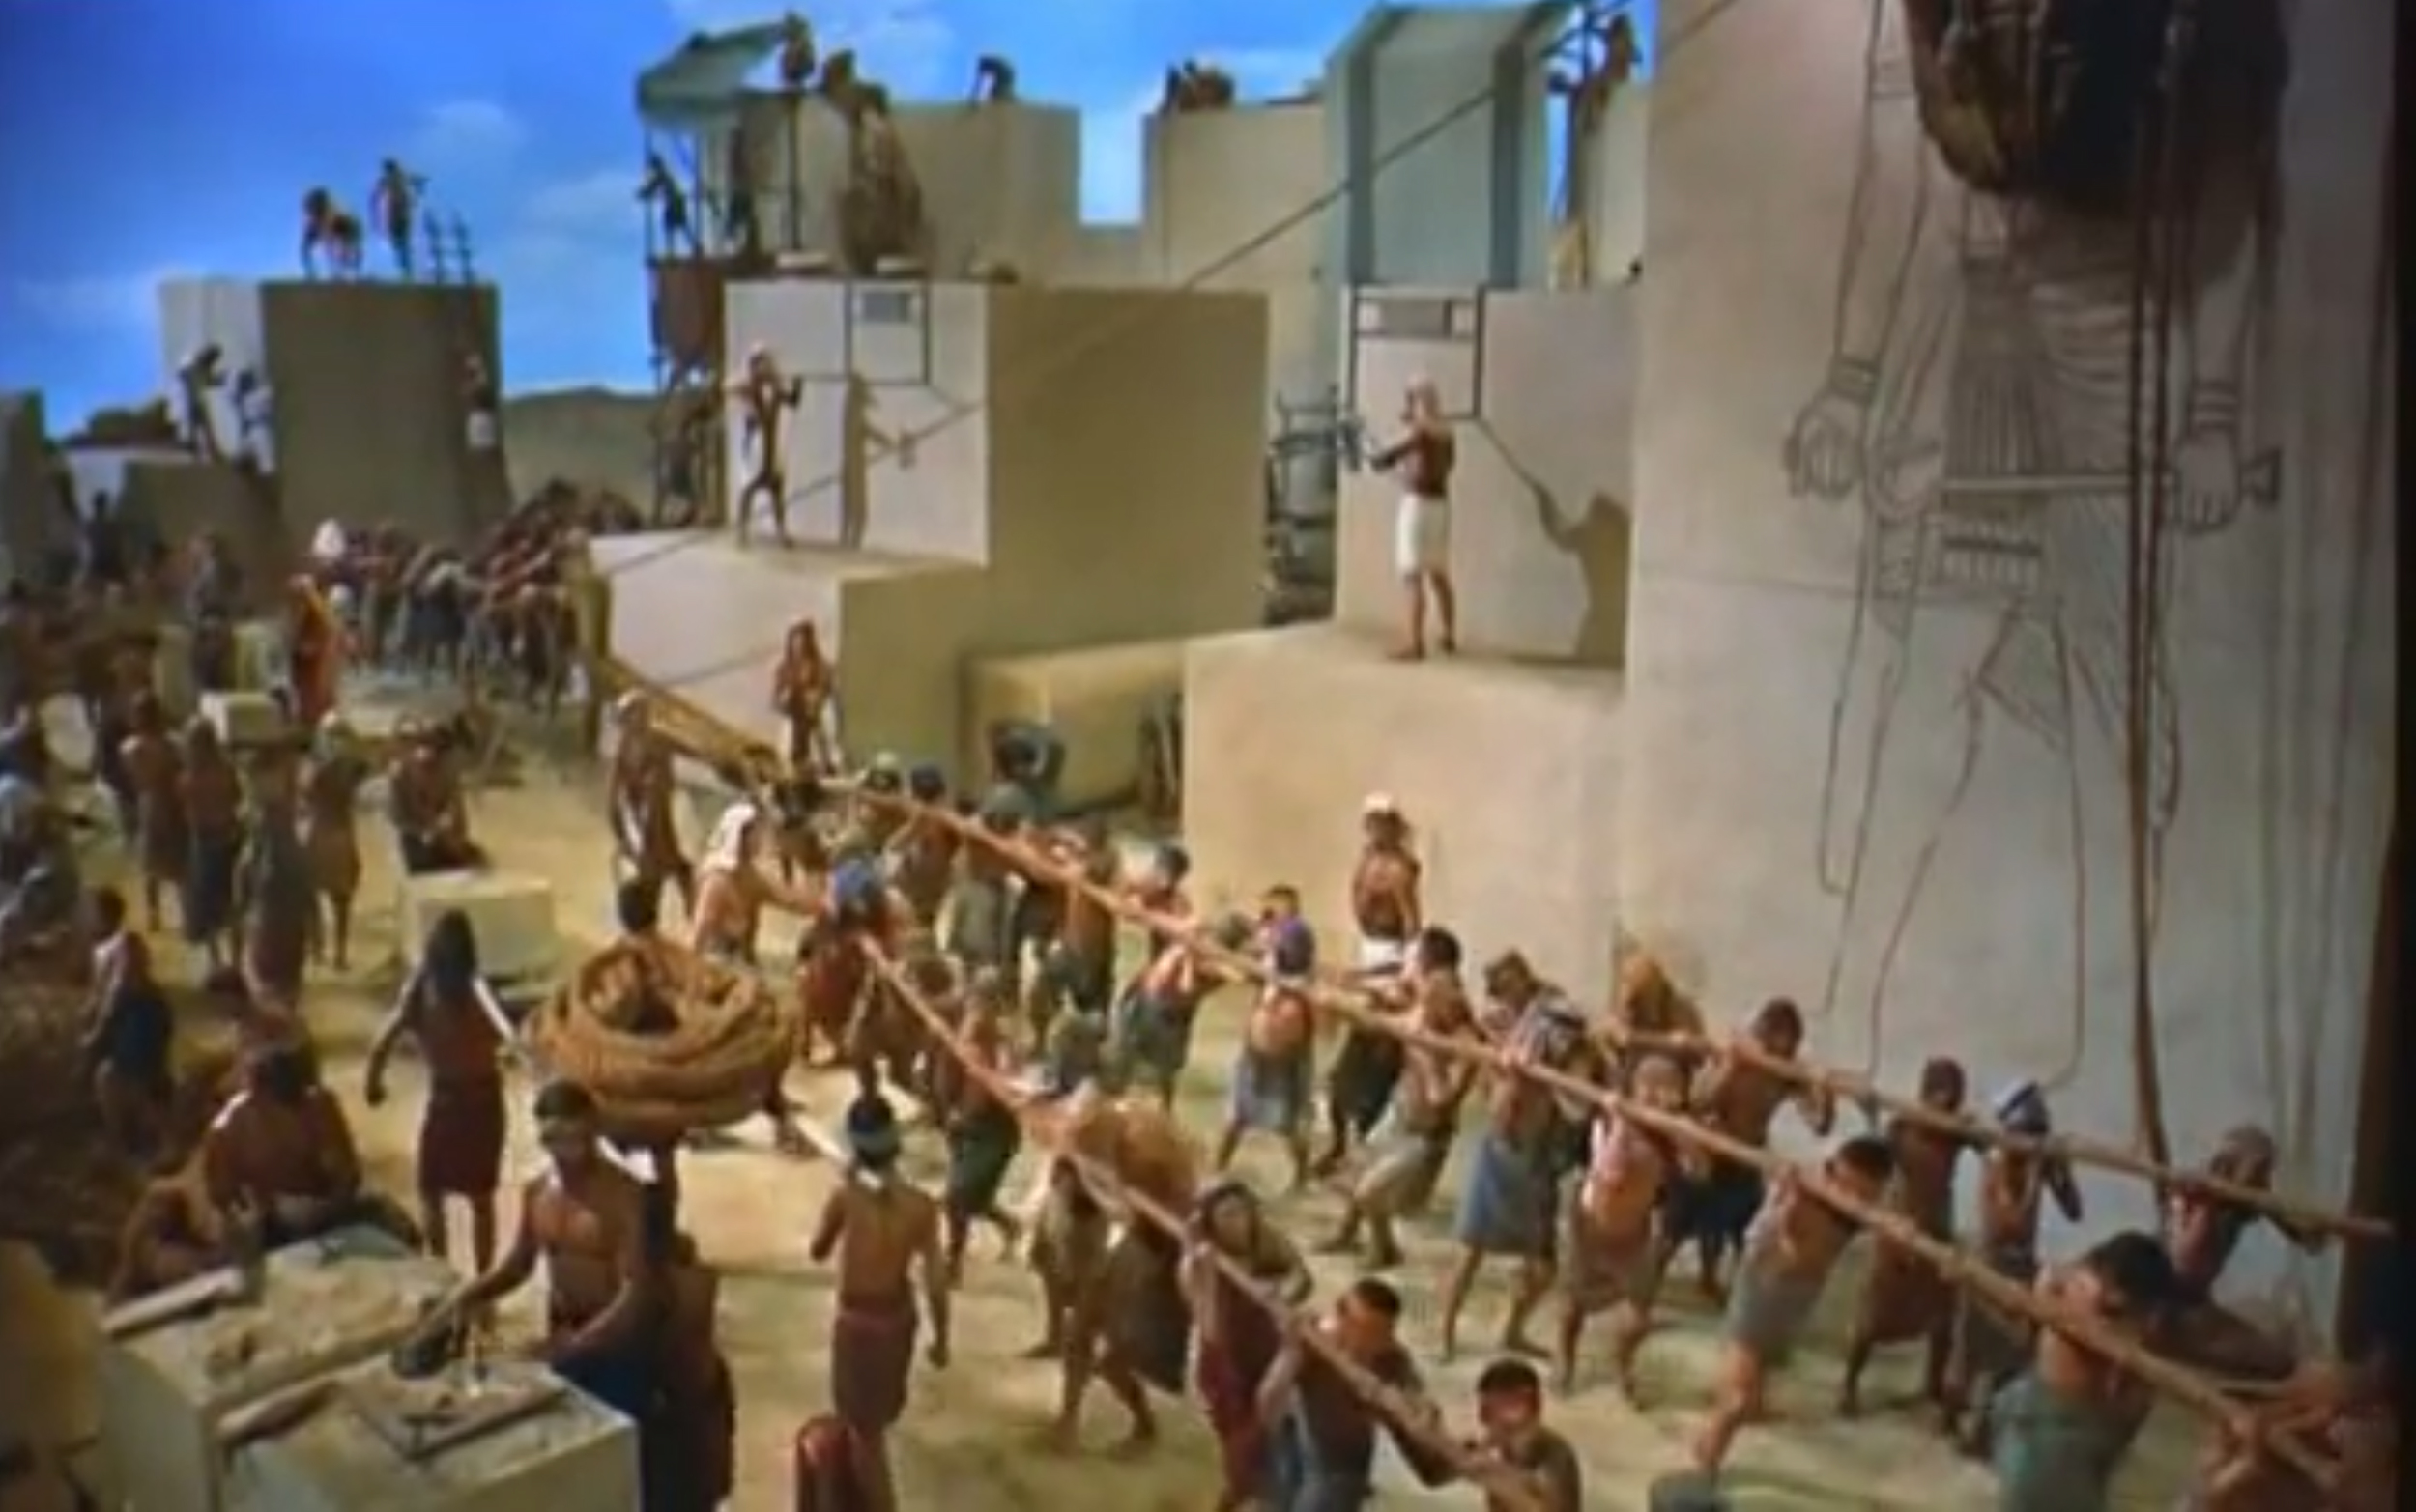 Cecile B. DeMille's 1956 film The Ten Commandments, while not specifically about the construction of the Great Pyramids, has contributed to the common image in many of our minds explaining the construction of the pyramids. In the 1980s, a French materials scientist named Joseph Davidovits proposed a very different scenario.